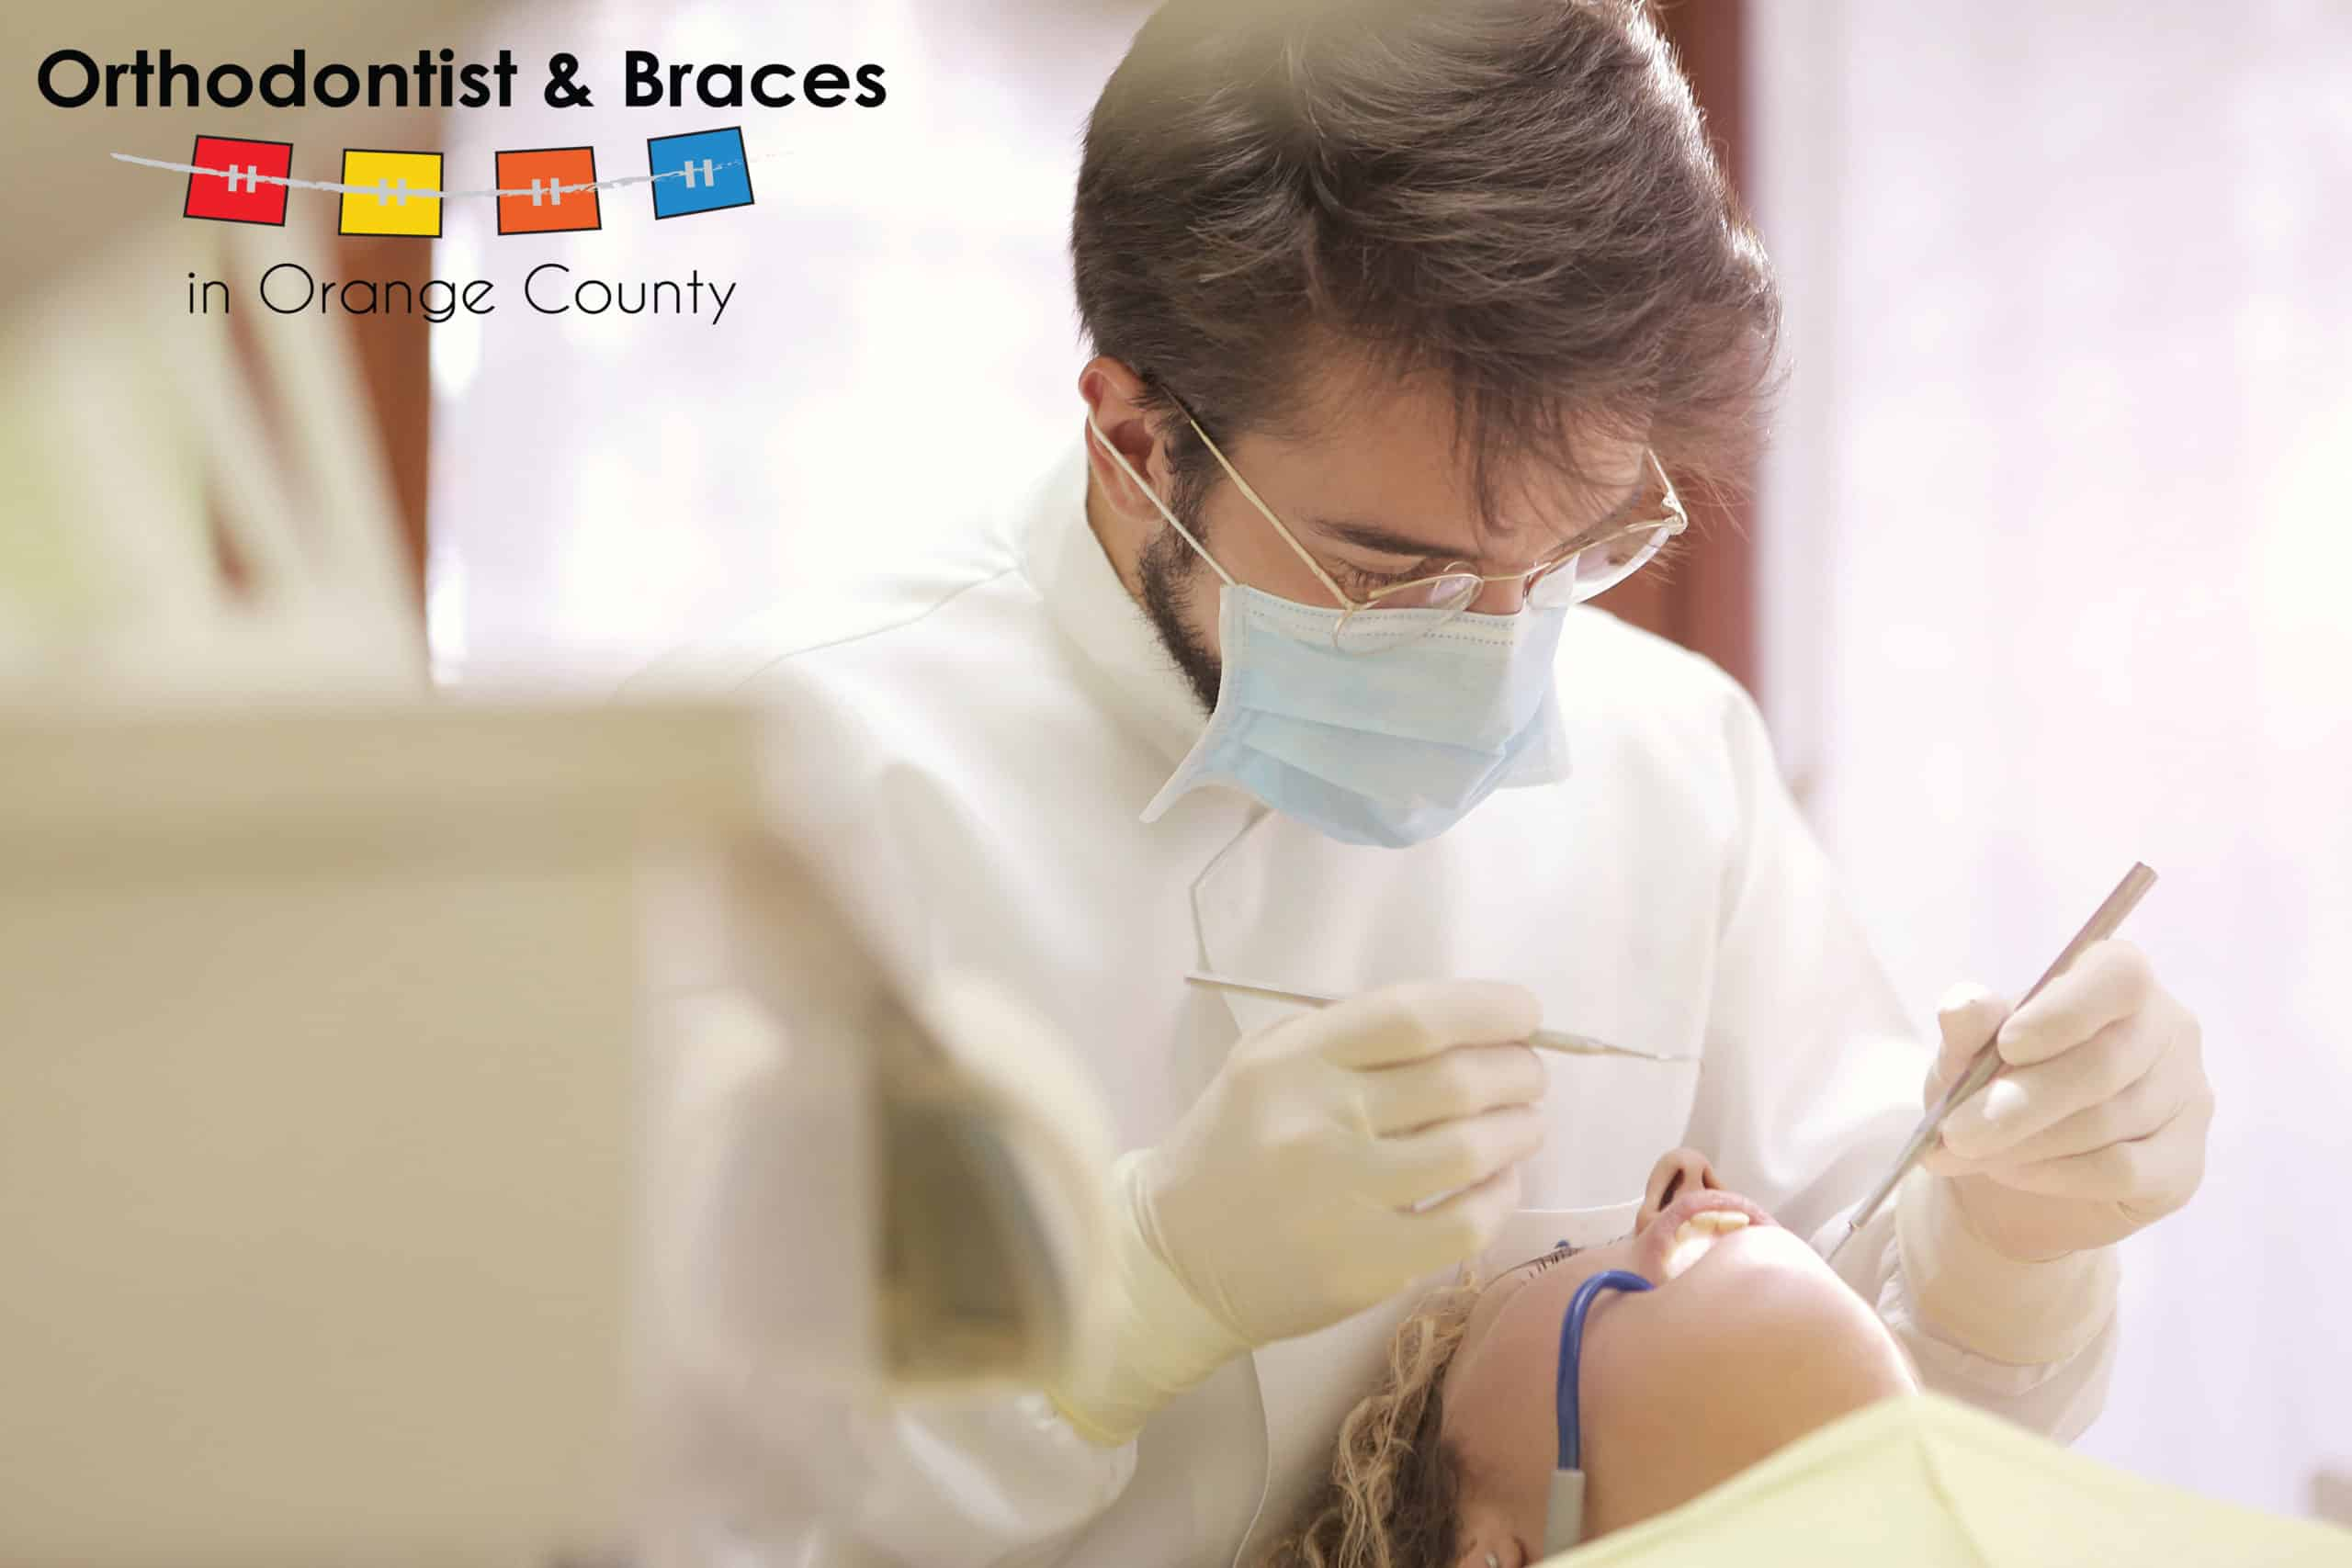 Welcome to Orthodontist and Braces in Orange County